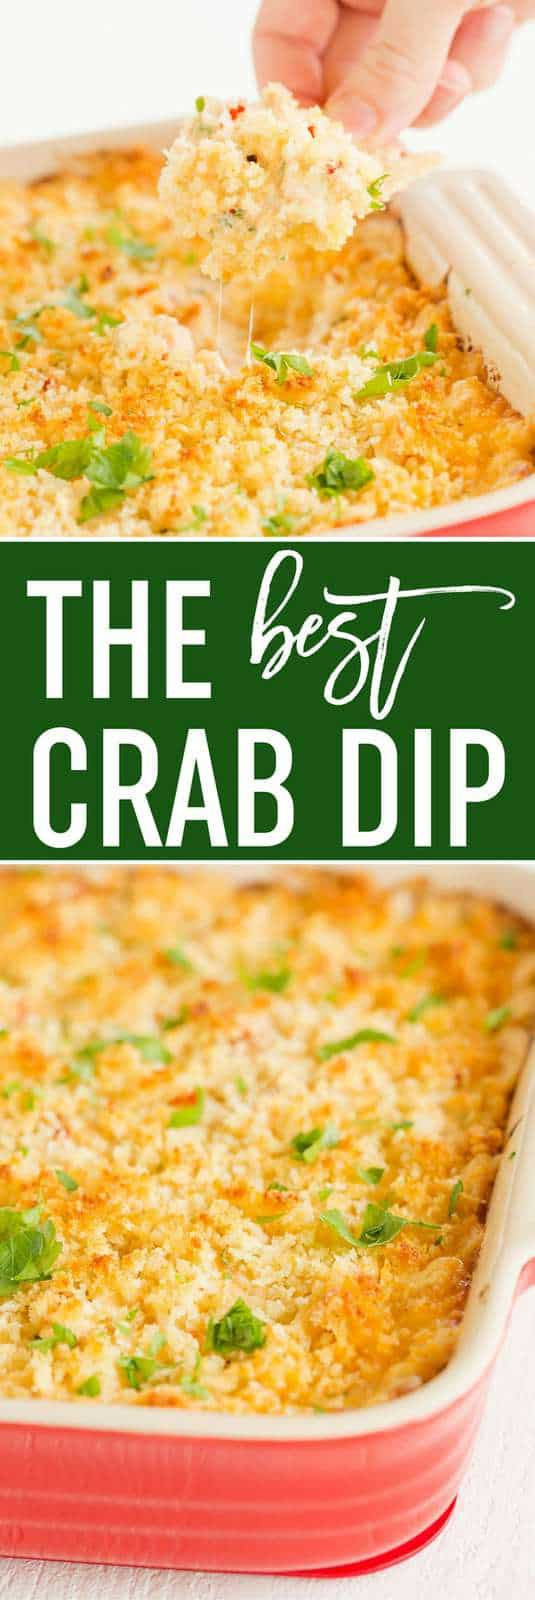 This is the BEST easy crab dip - full of flavor and perfect for summer parties. Dig in with your favorite chips or serve on baguettes!